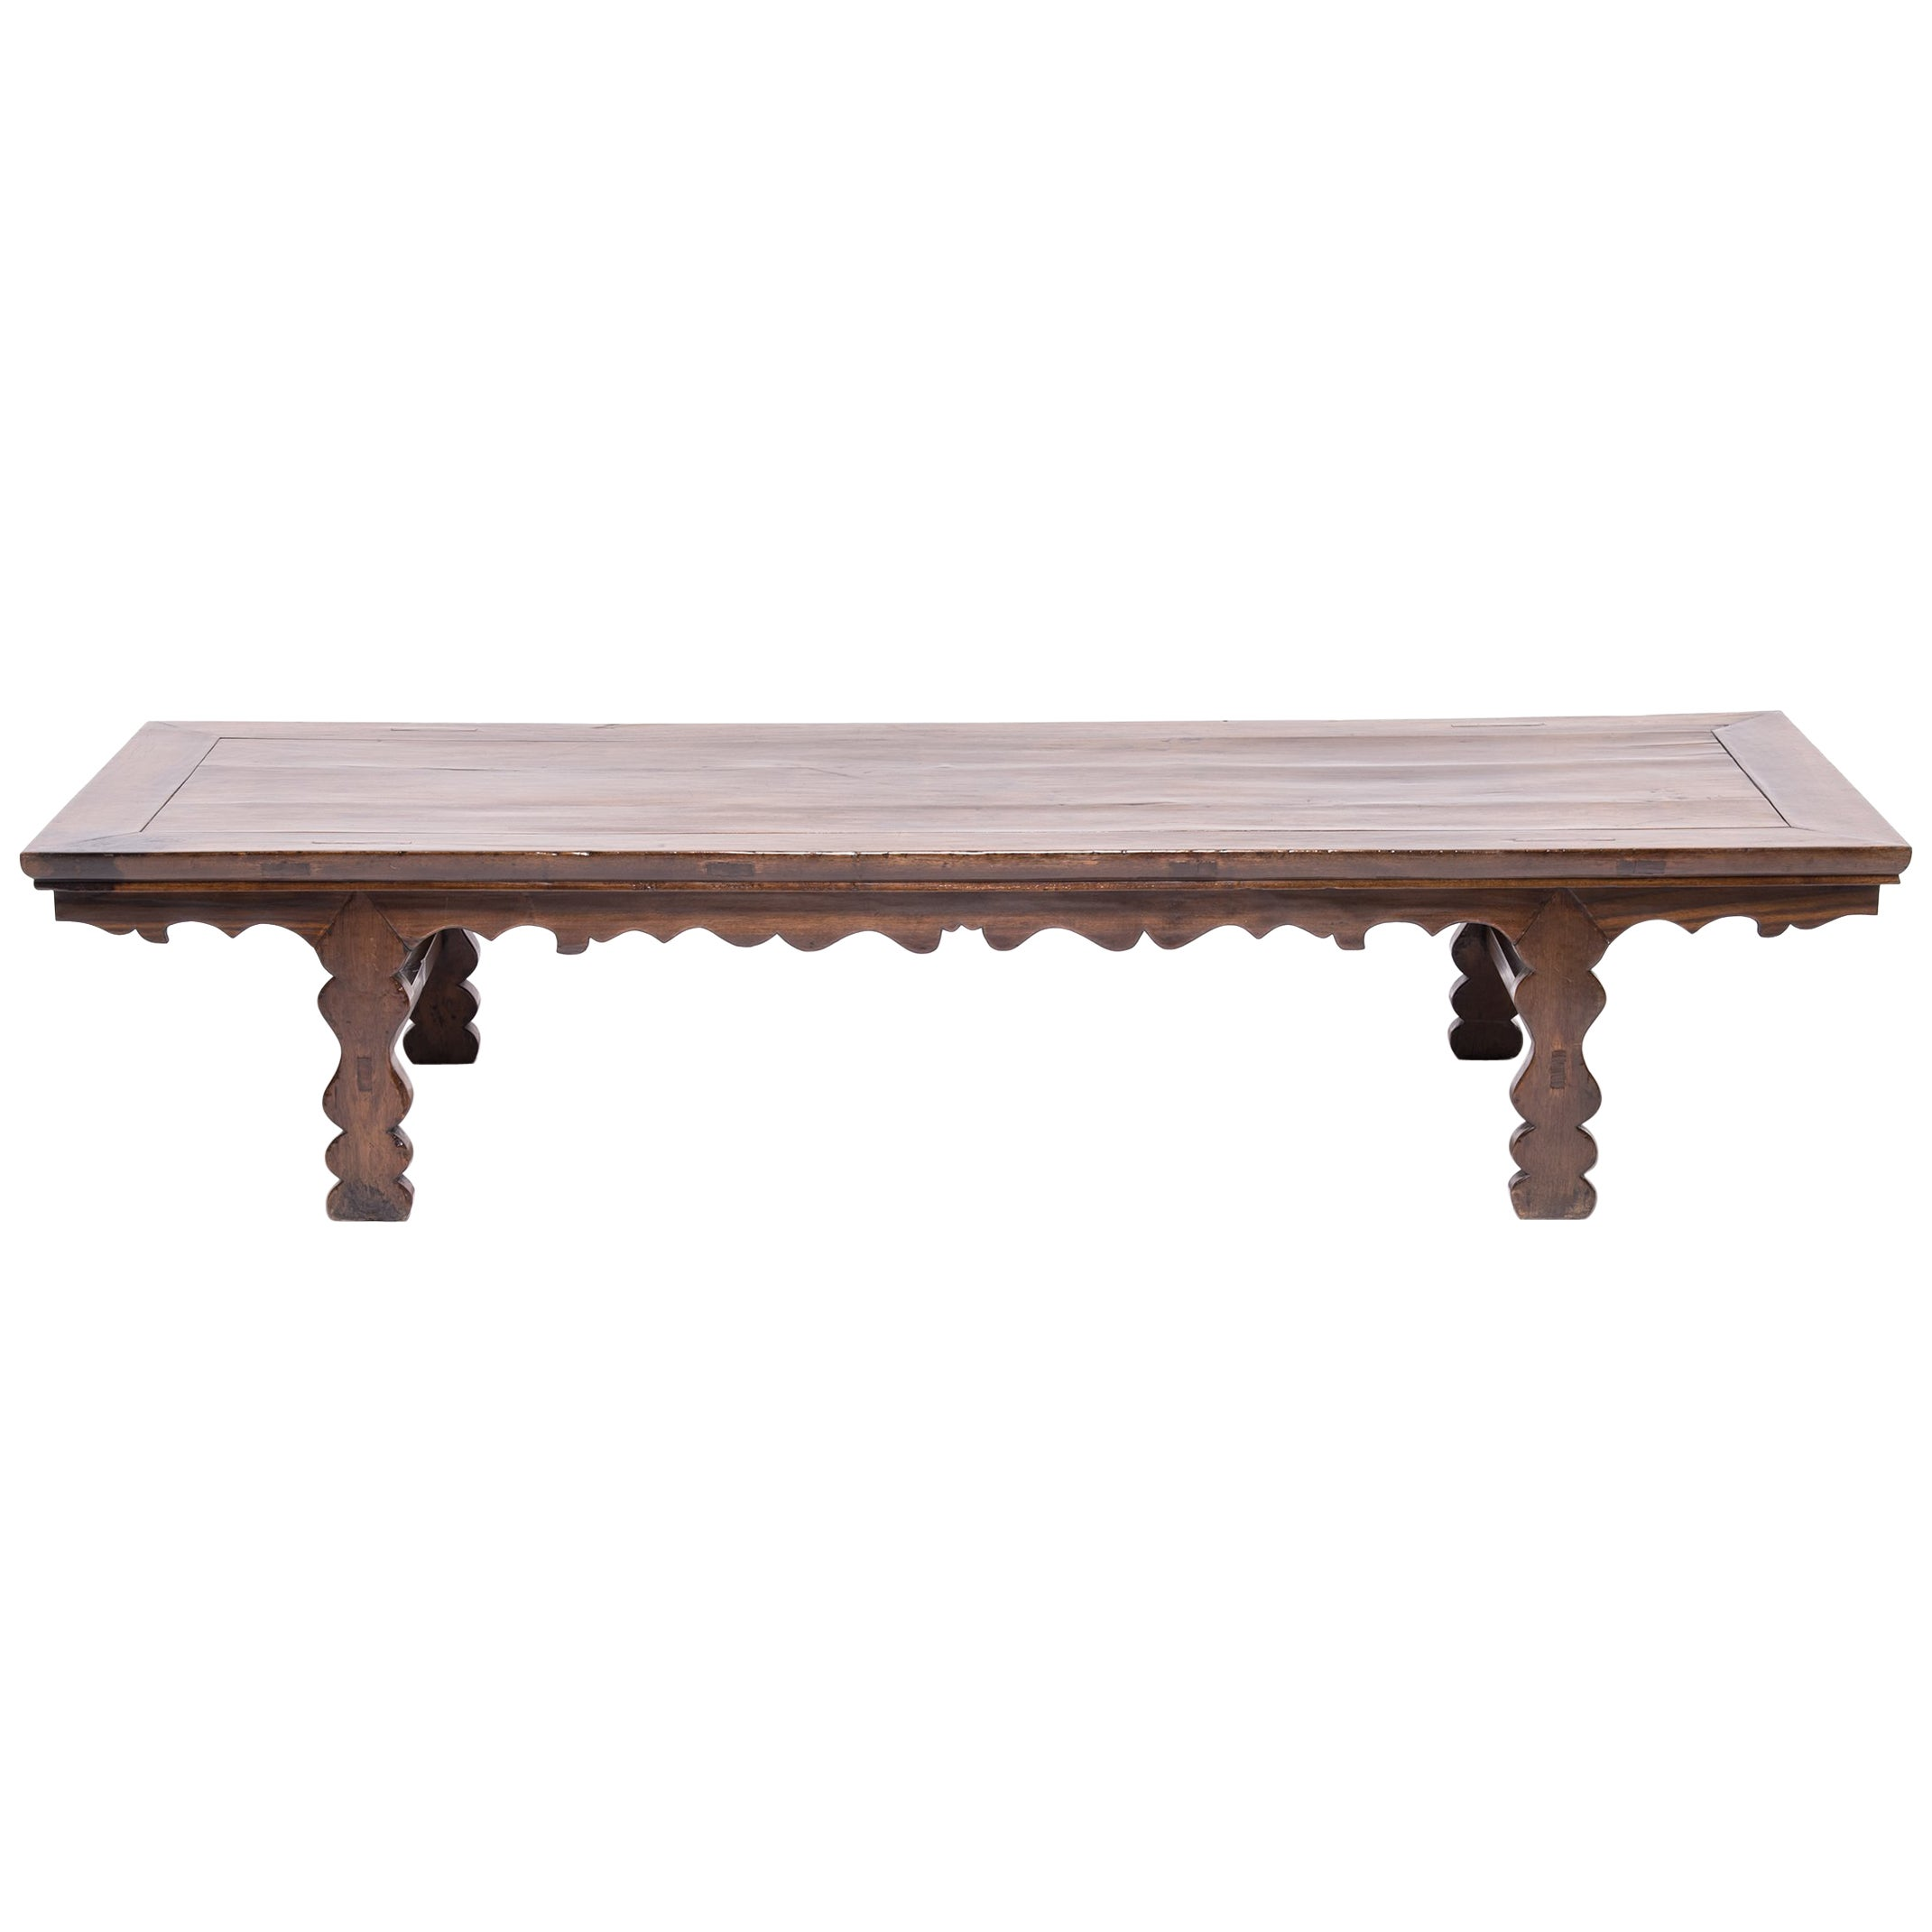 19th Century Chinese Low Table with Carved Apron